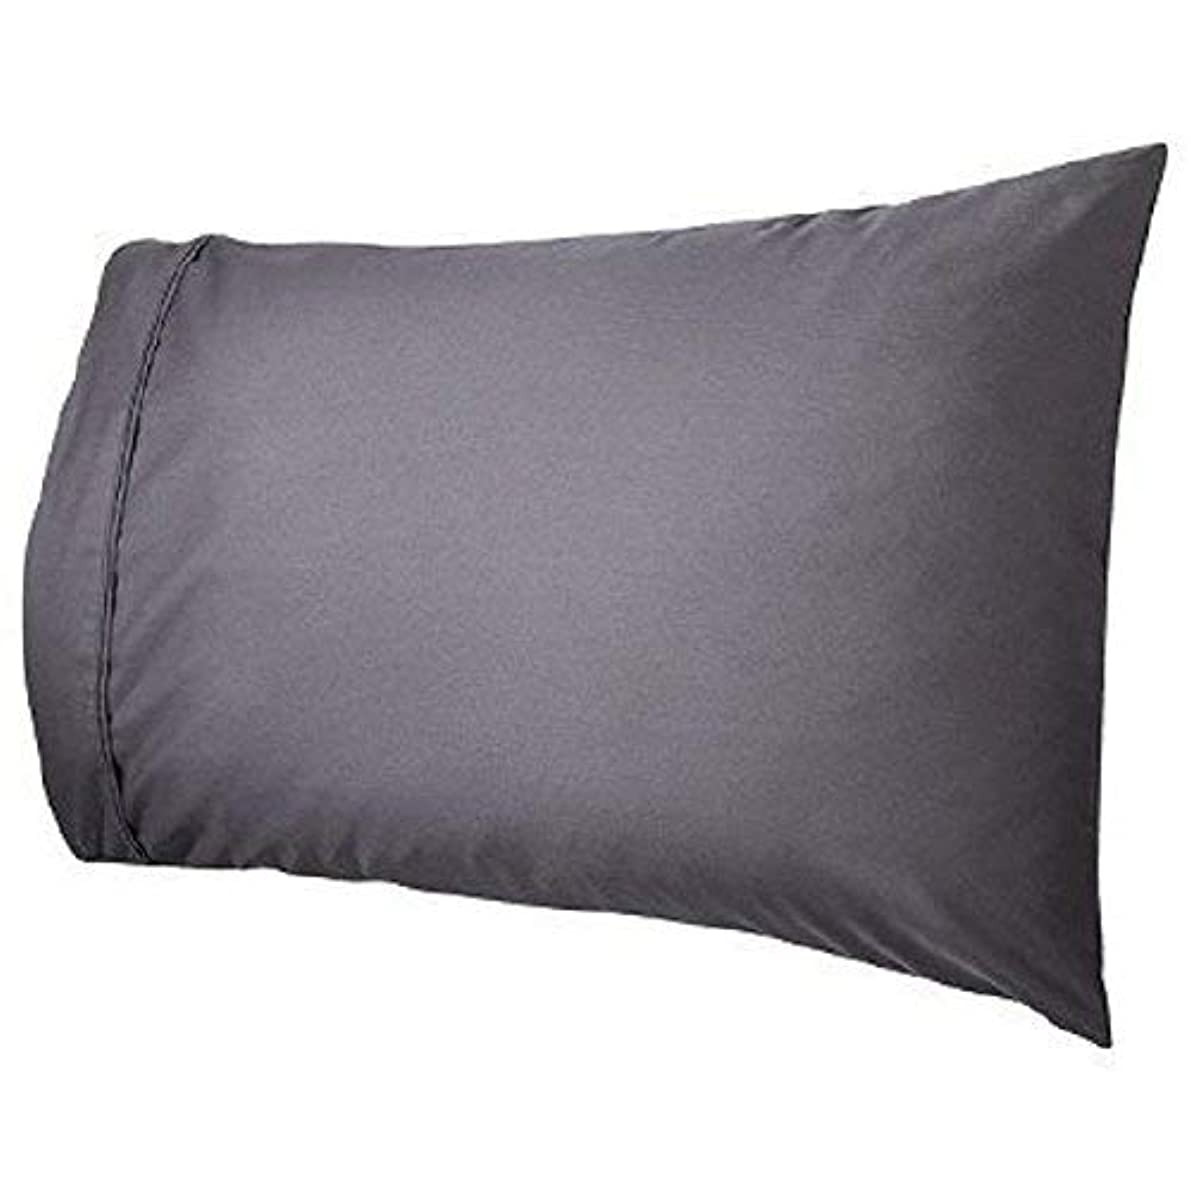 ARlinen Cotton Pillow Cases -(Dark Grey Solid, Queen Size) 400 Thread Count Ultra-Soft (Set of 2) Pillow Covers